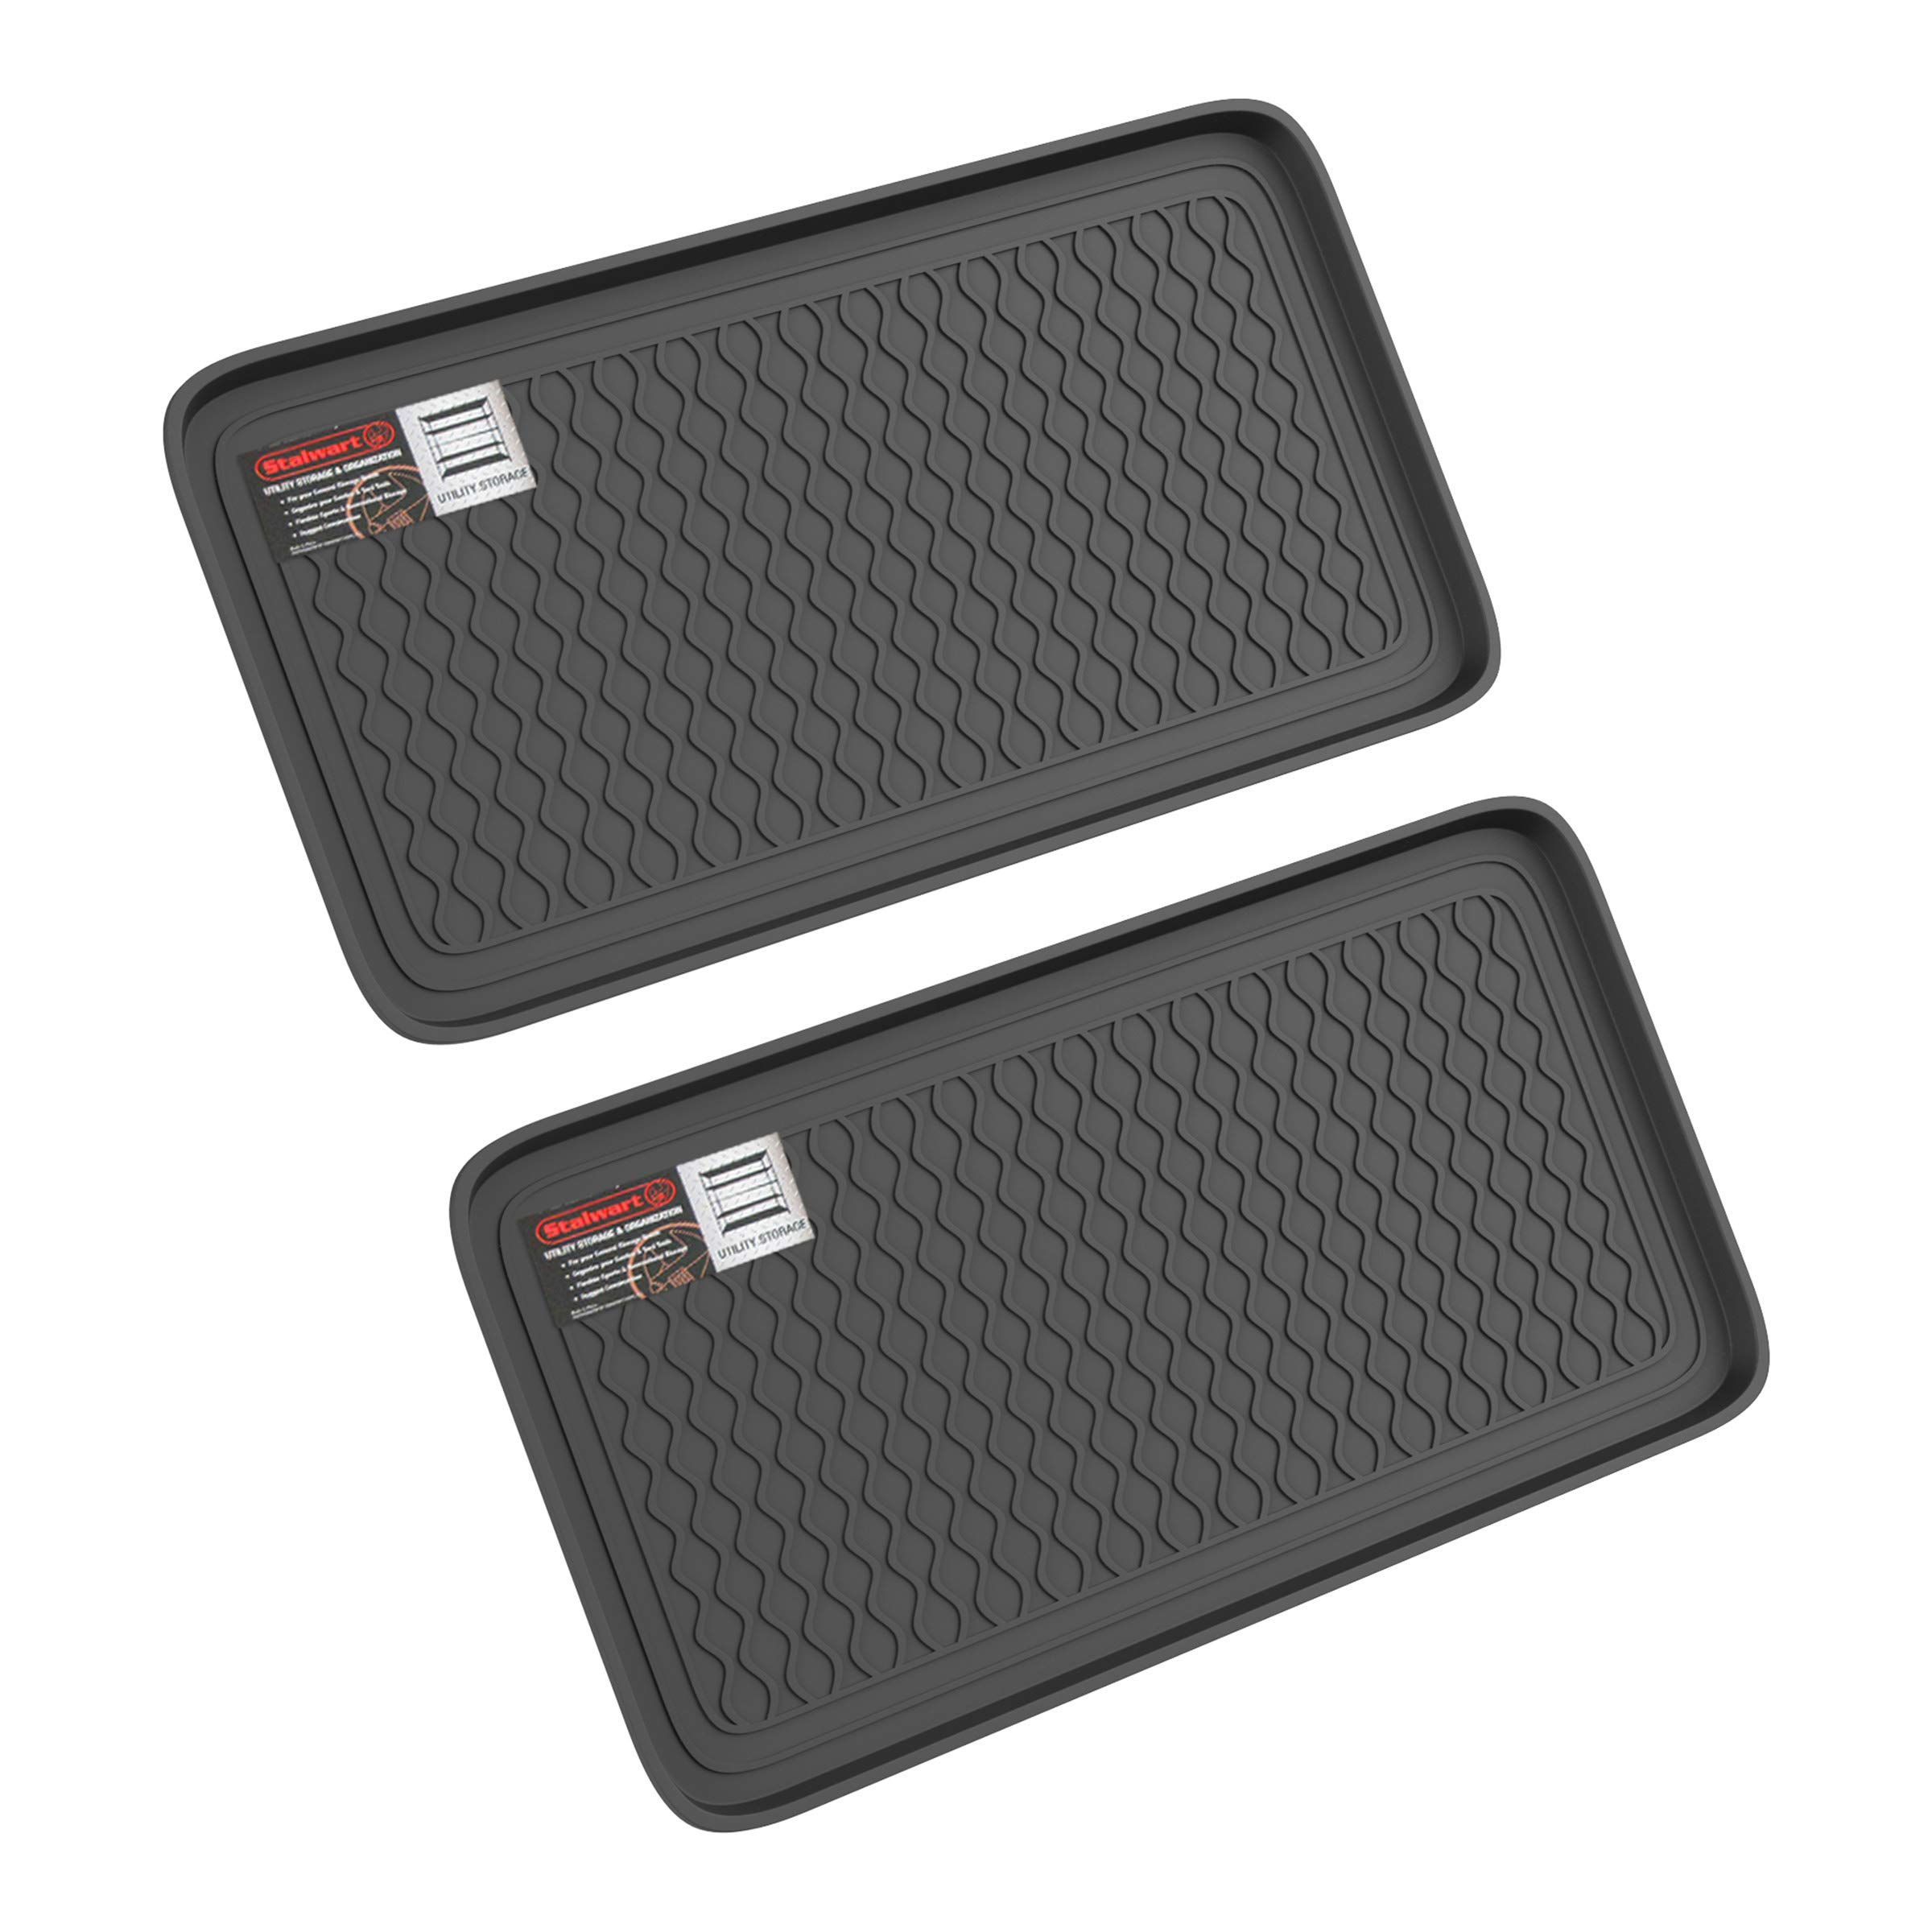 Stalwart 75-ST6102 Weather Boot Tray-Large Water Resistant Plastic Utility Shoe Mat for Indoor and Outdoor Use in All Seasons (Set of Two, Black) by Stalwart (Image #8)